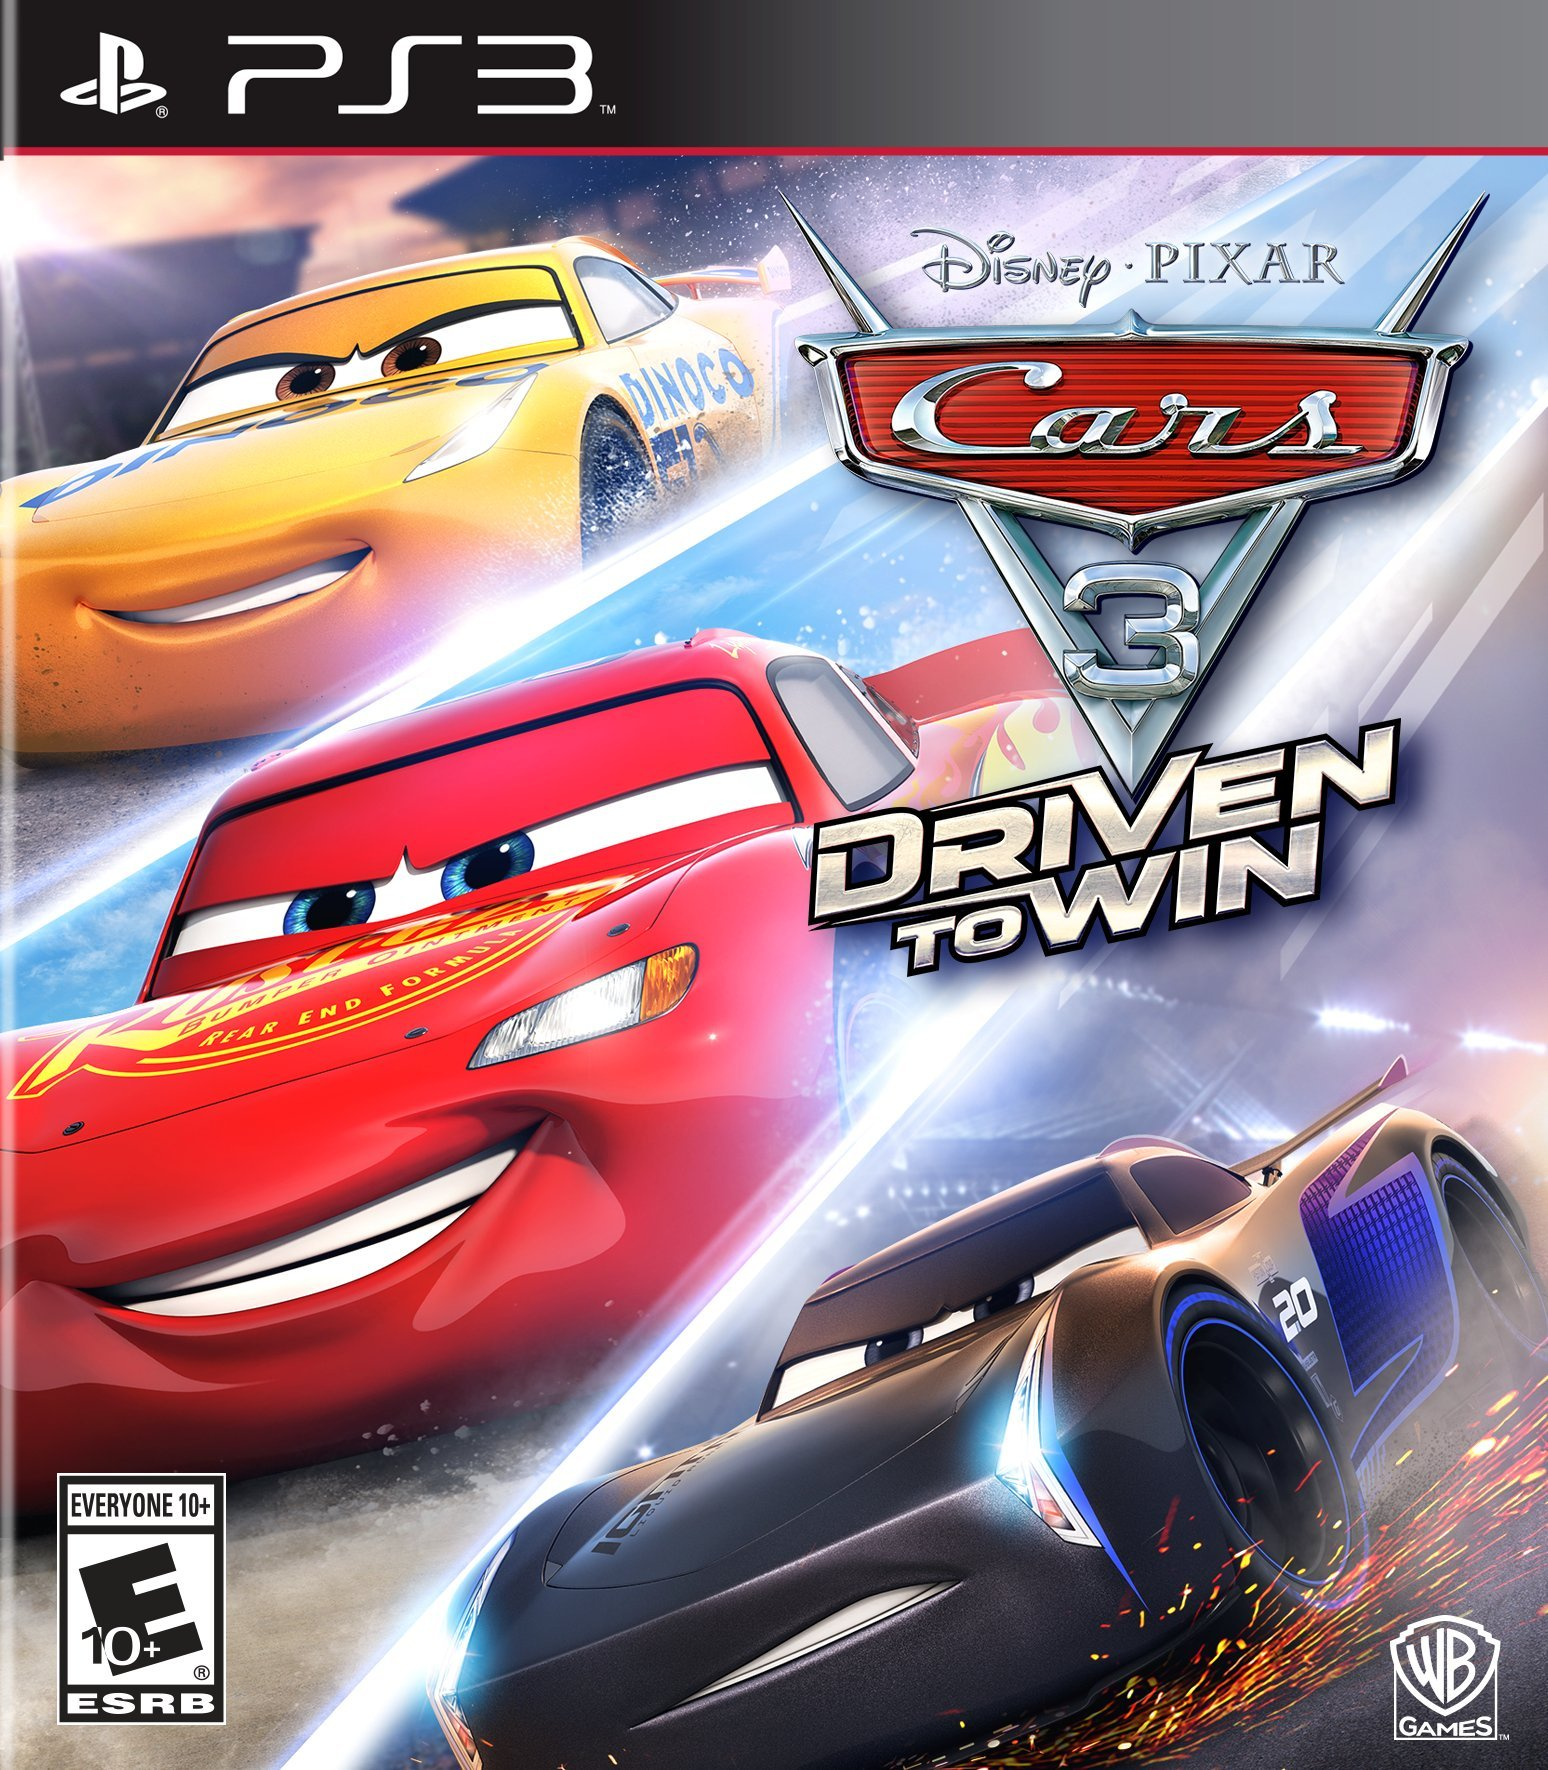 Cars 3 Driven To Win Release Date Xbox 360 PS3 Wii U Xbox One PS4 Switch